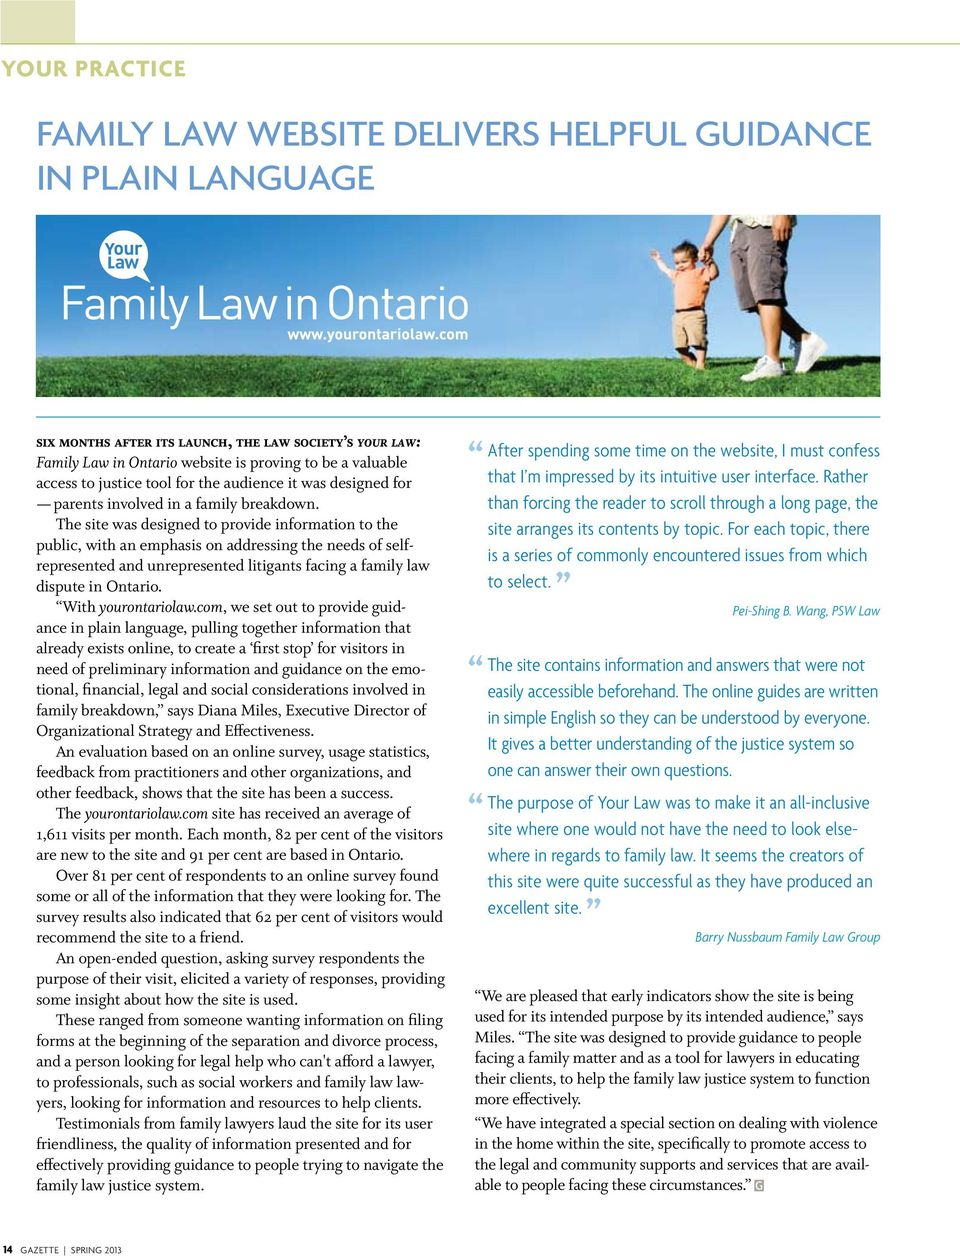 The site was designed to provide information to the public, with an emphasis on addressing the needs of selfrepresented and unrepresented litigants facing a family law dispute in Ontario.